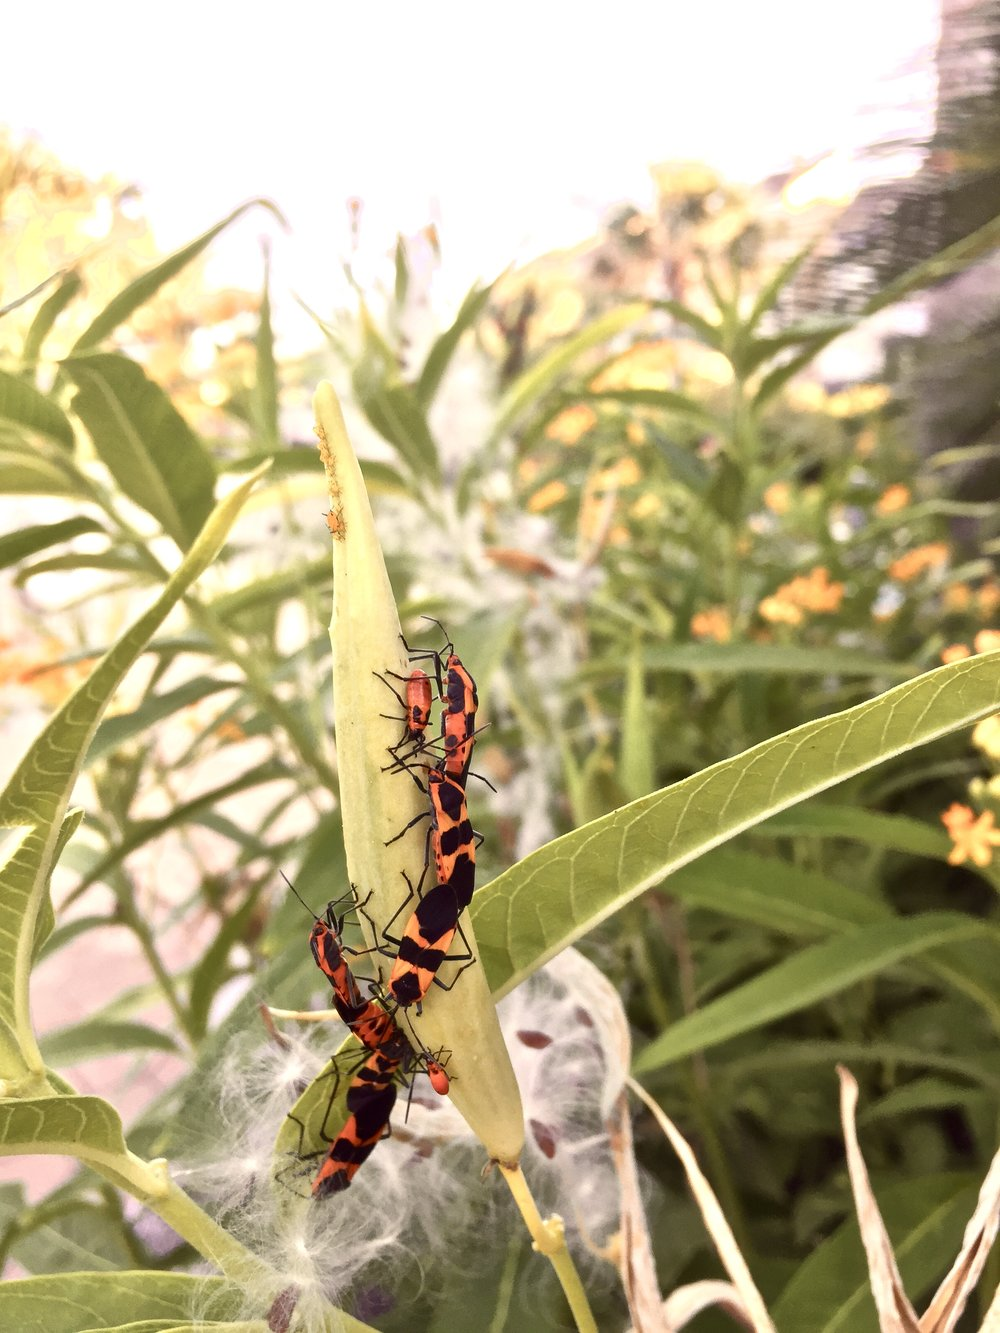 Large milkweed bugs with milkweed aphids. Silky seeds of butterflyweed in background.